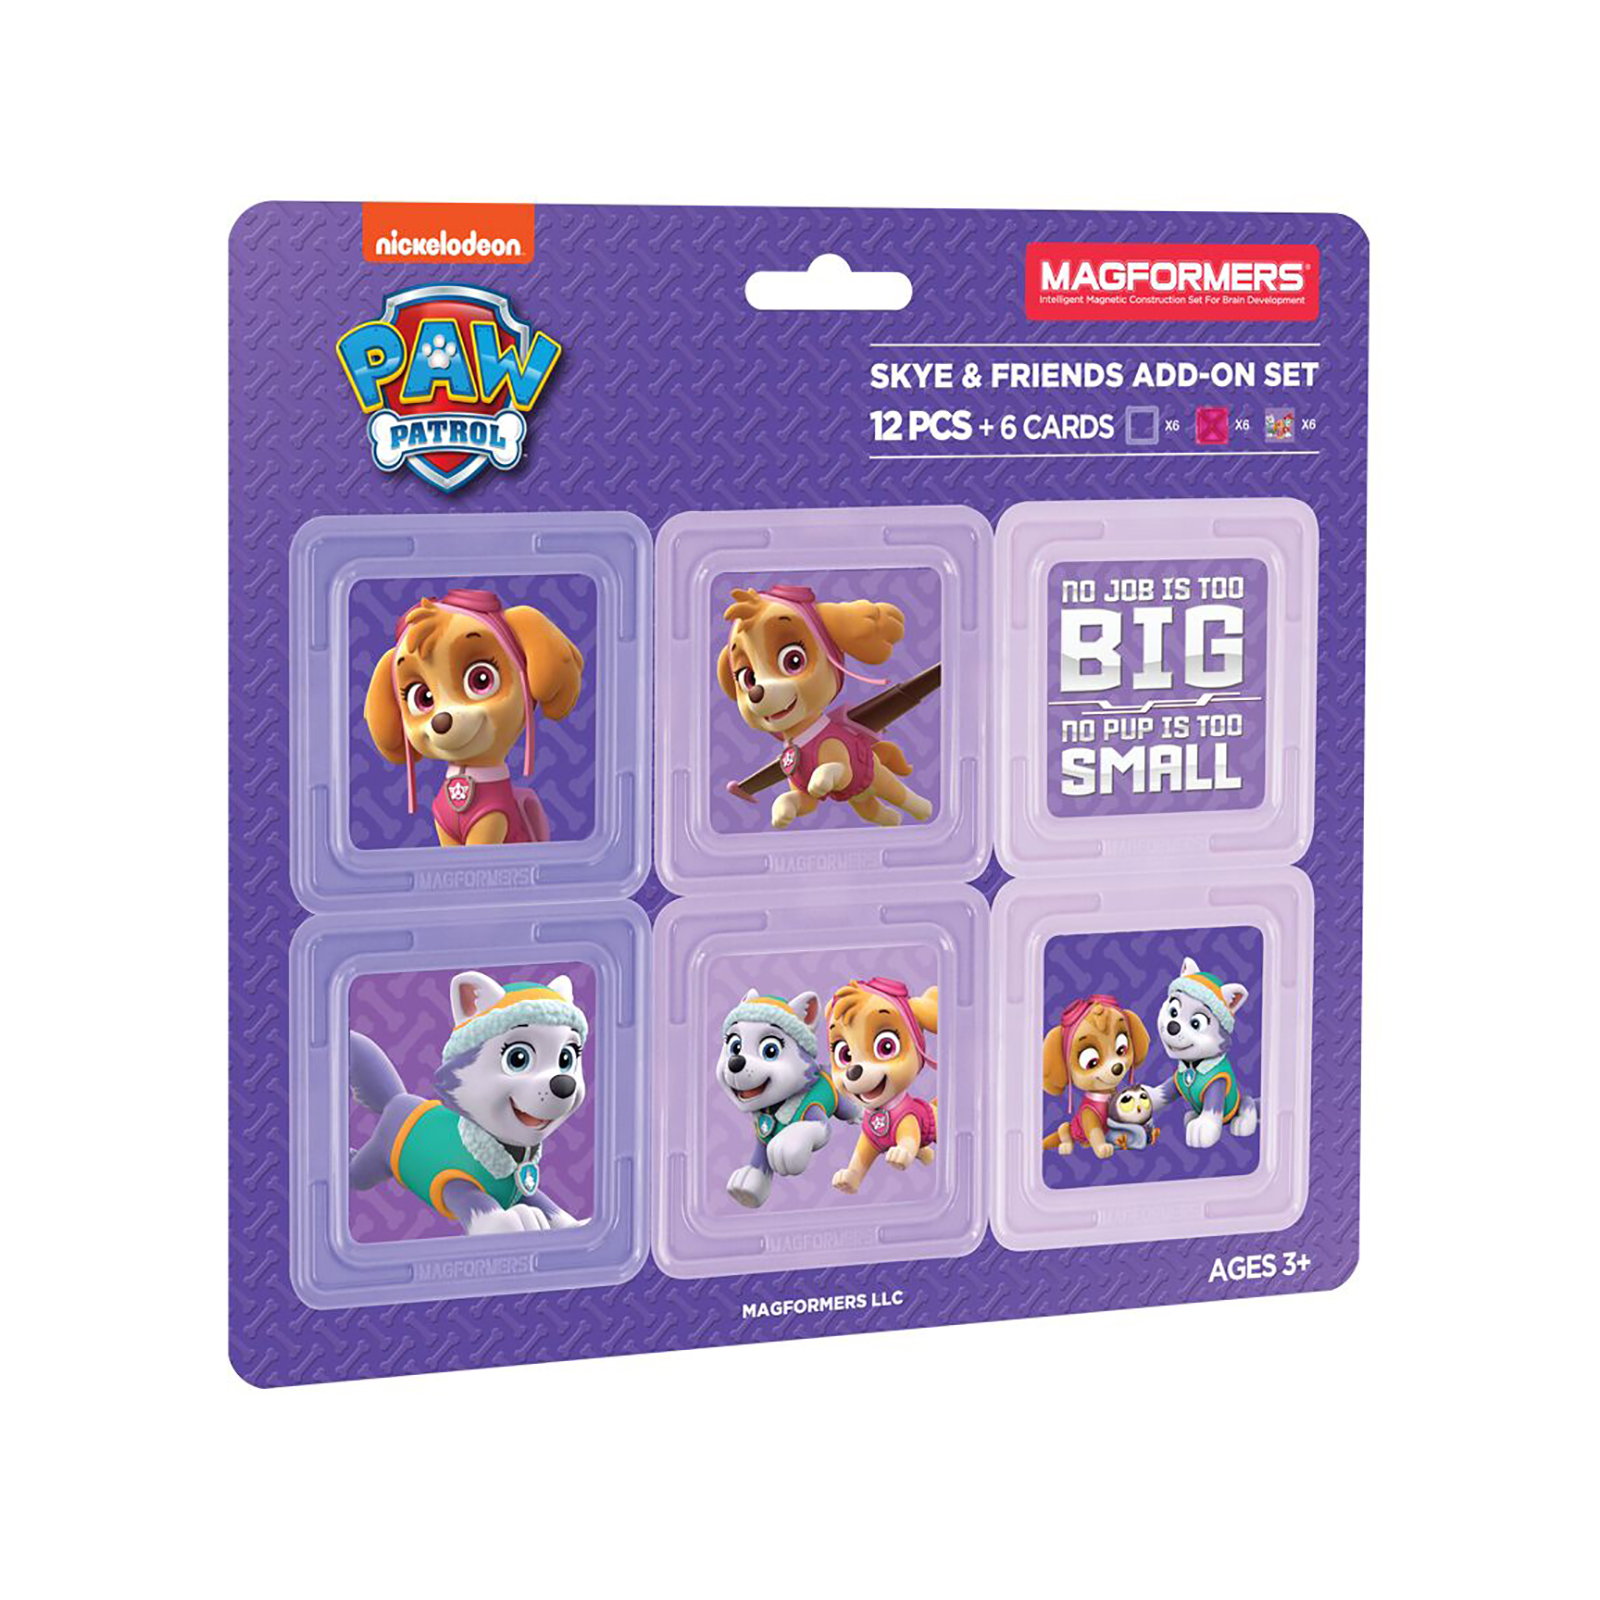 Magformers Paw Patrol 12 Piece Skye & Friends Add-On Magnetic Construction Set